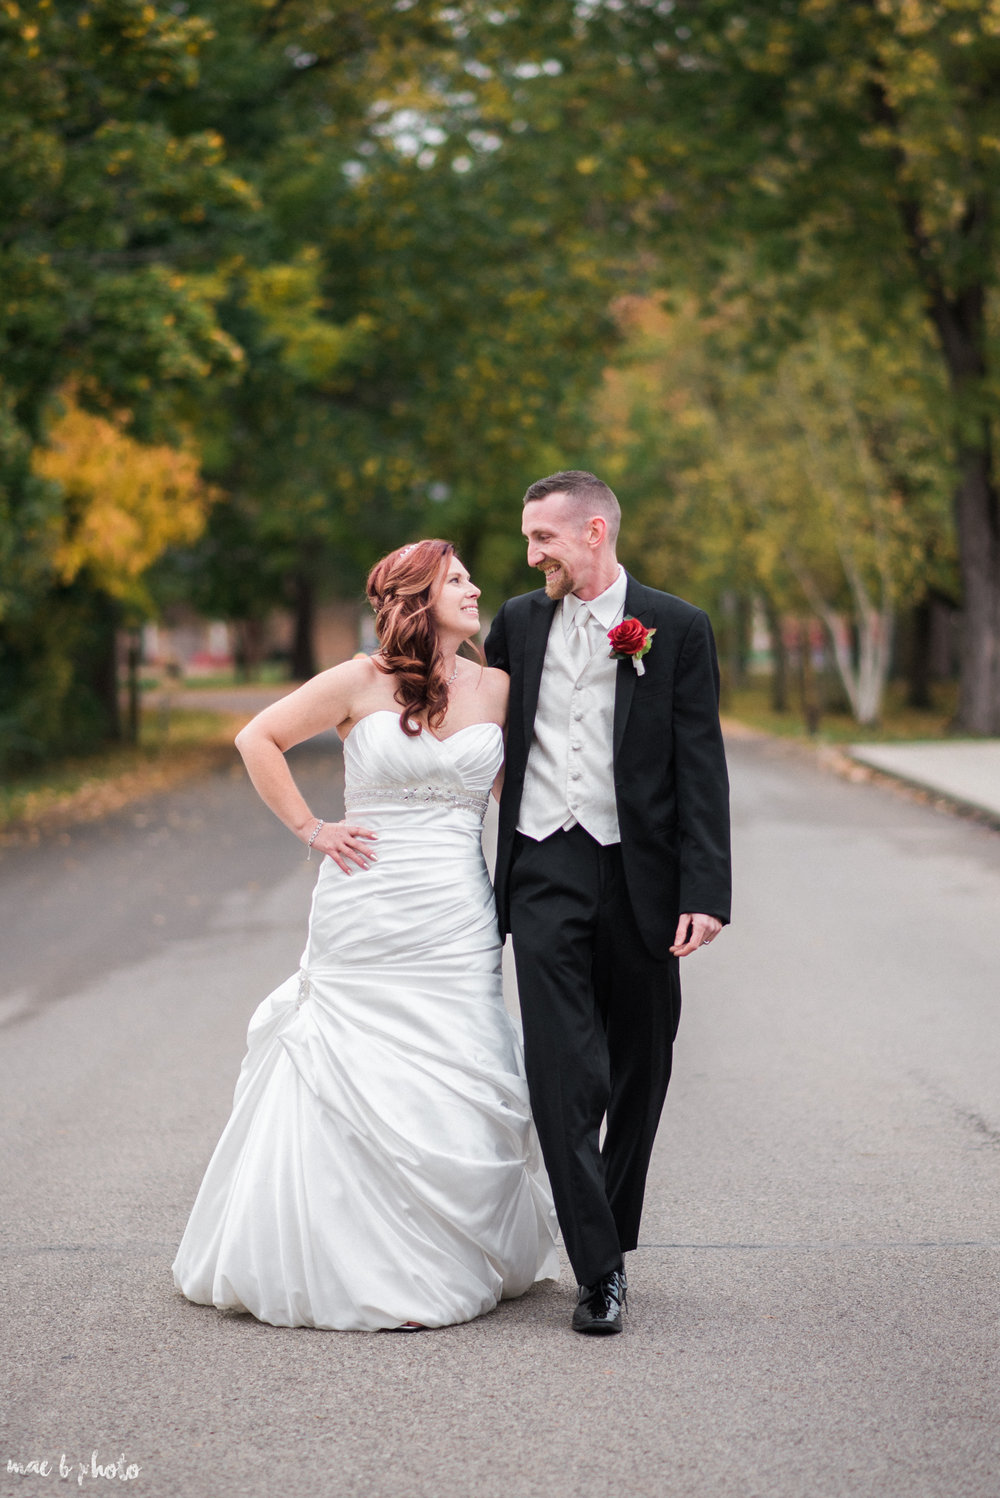 tracey and aaron's personal fall wedding at tiffany's banquet center in brookfield ohio-82.jpg